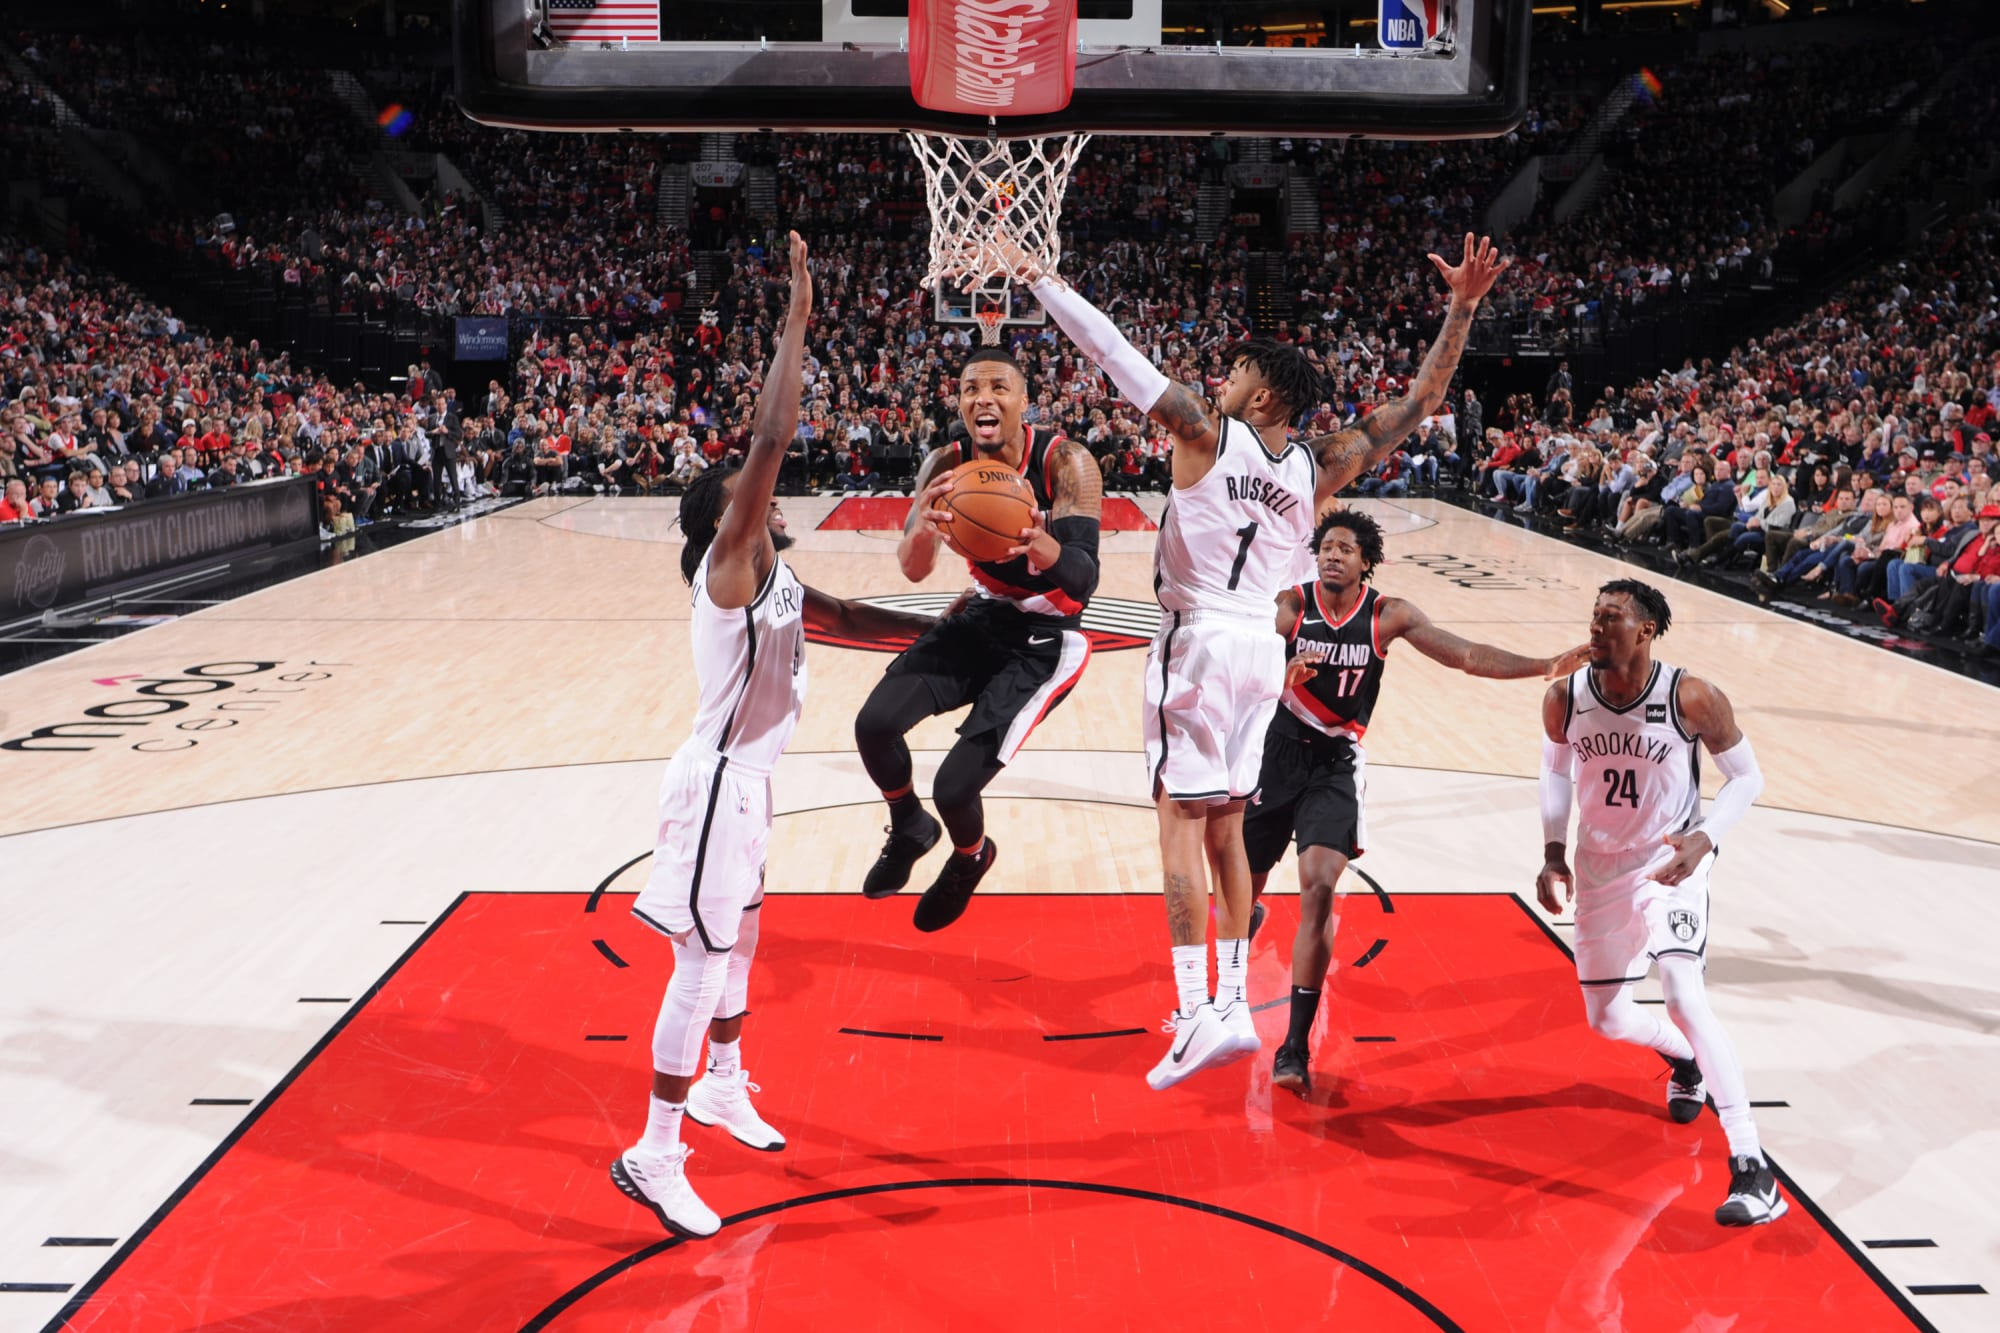 Spurs tickets can be found for as low as $11.00, with an average price of $95.00. Portland Trail Blazers: Still struggling to attack the basket